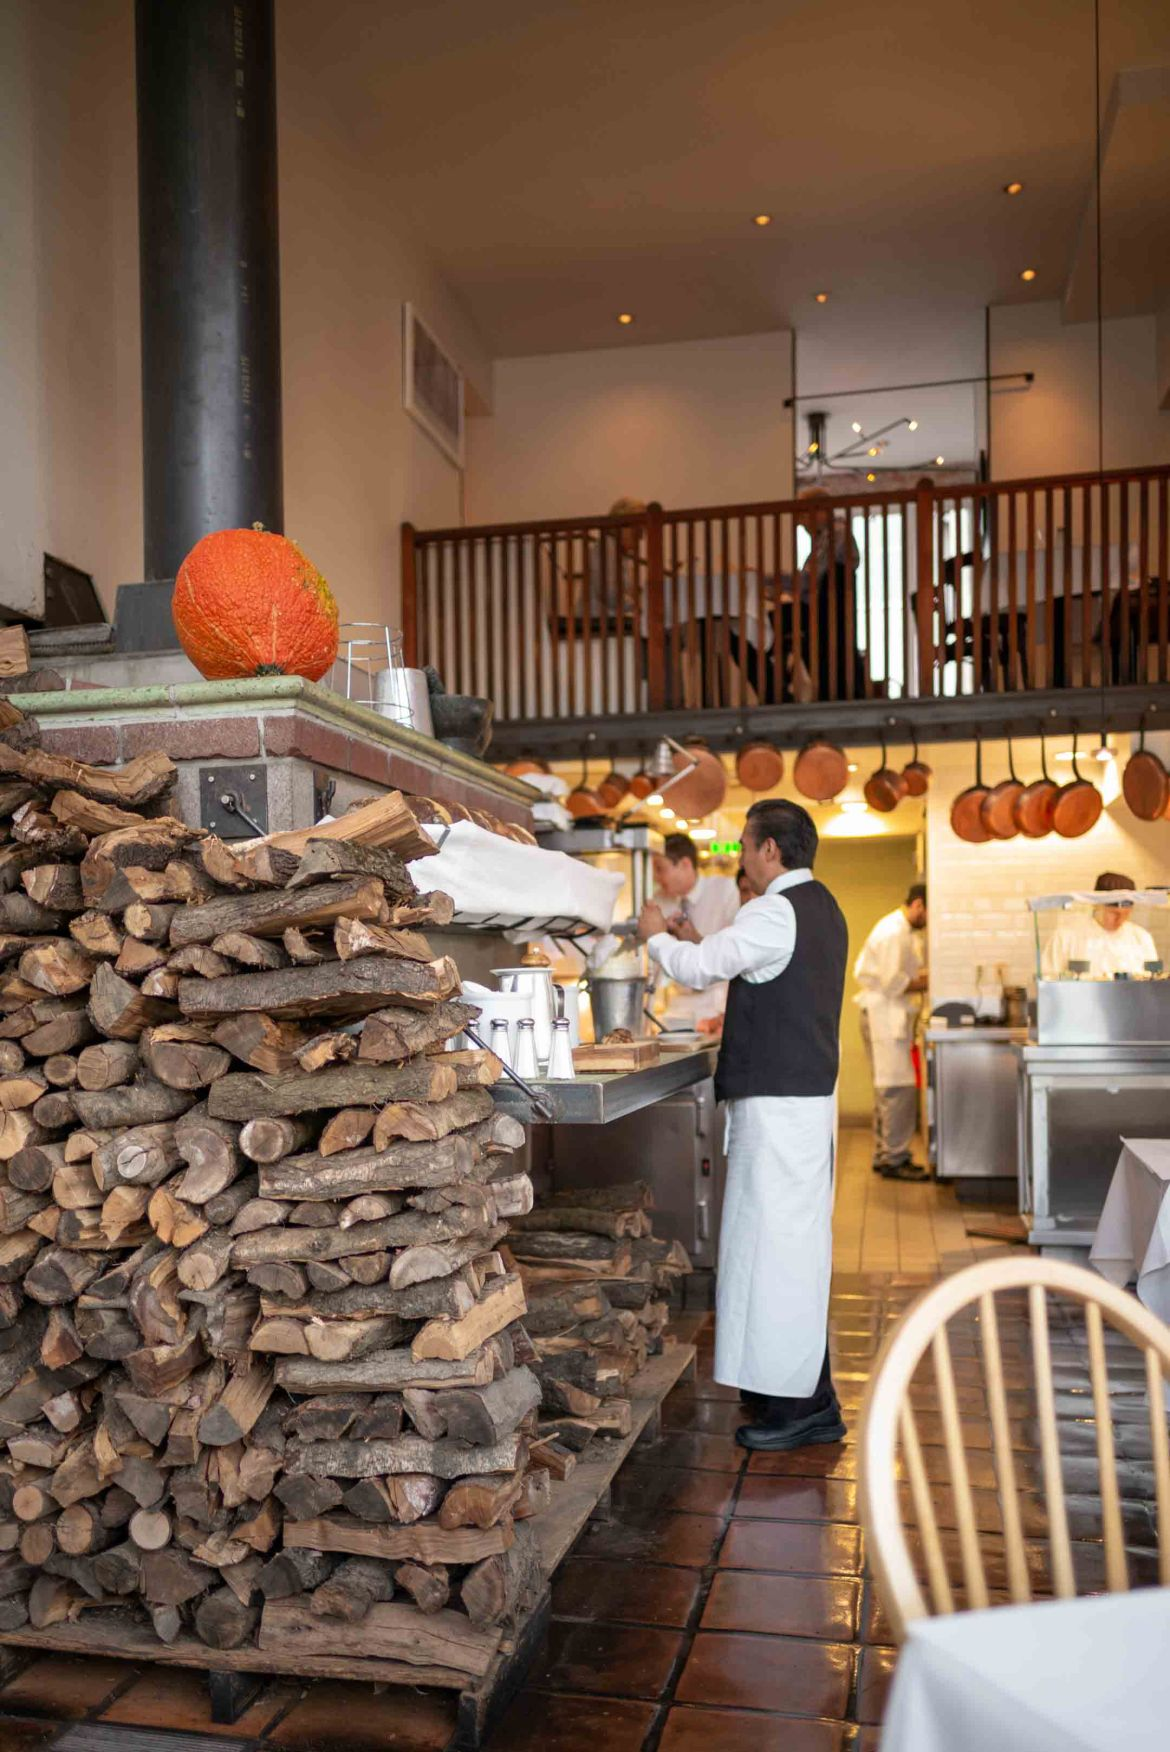 One of the best restaurants in San Francisco is Zuni Cafe, a classic restaurant with giant wood fired ovens in the center with local regulars and young couples